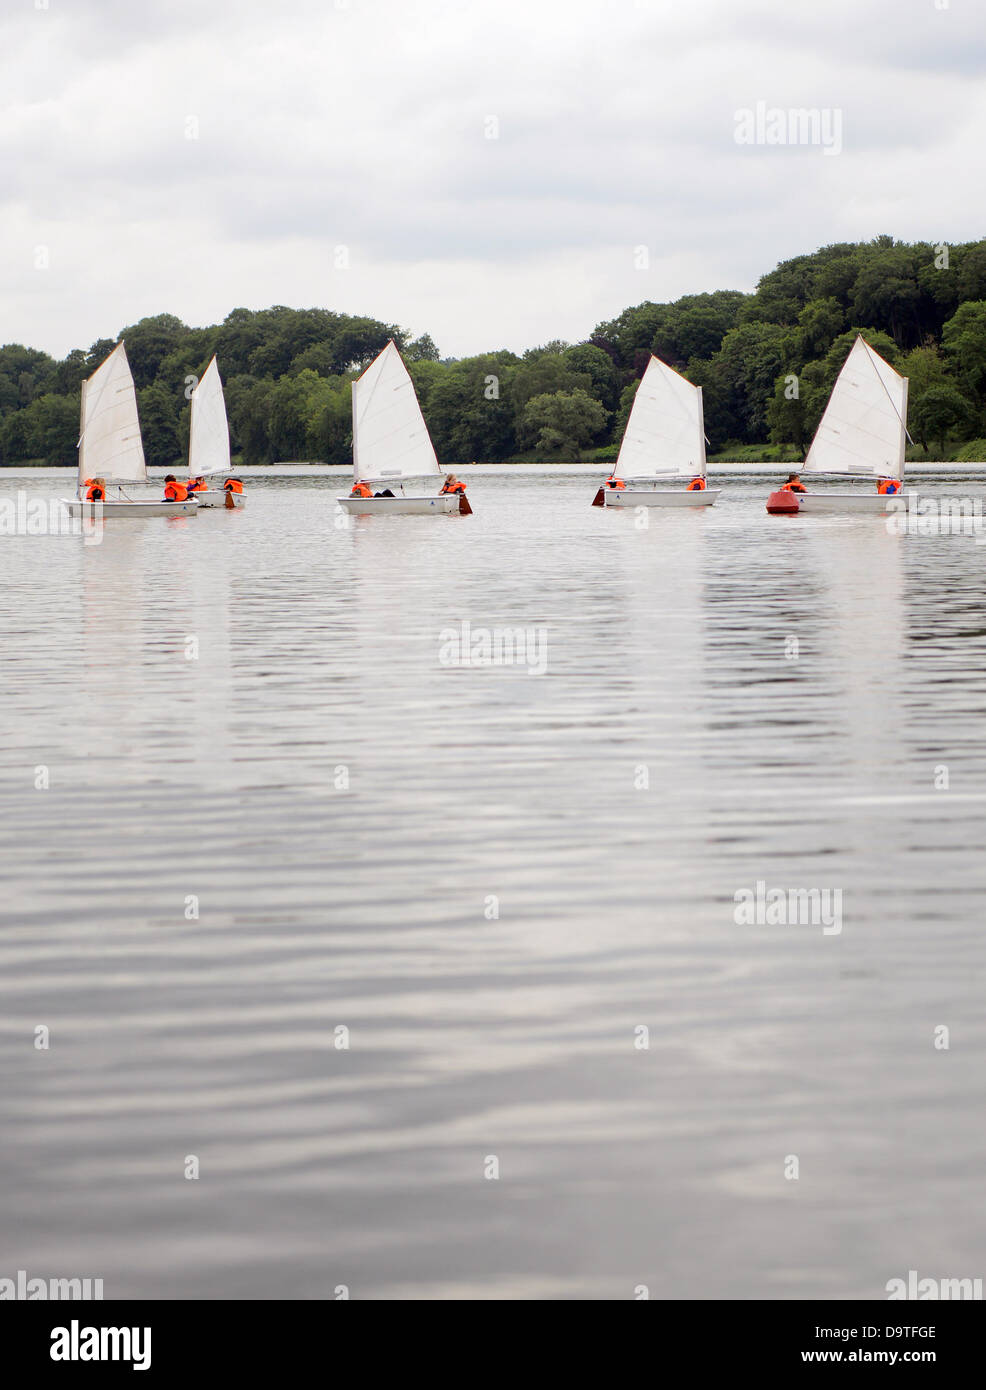 Children sit in sailing boats which are also called optimists on Baldeney lake in Essen, Germany, 25 June 2013. - Stock Image